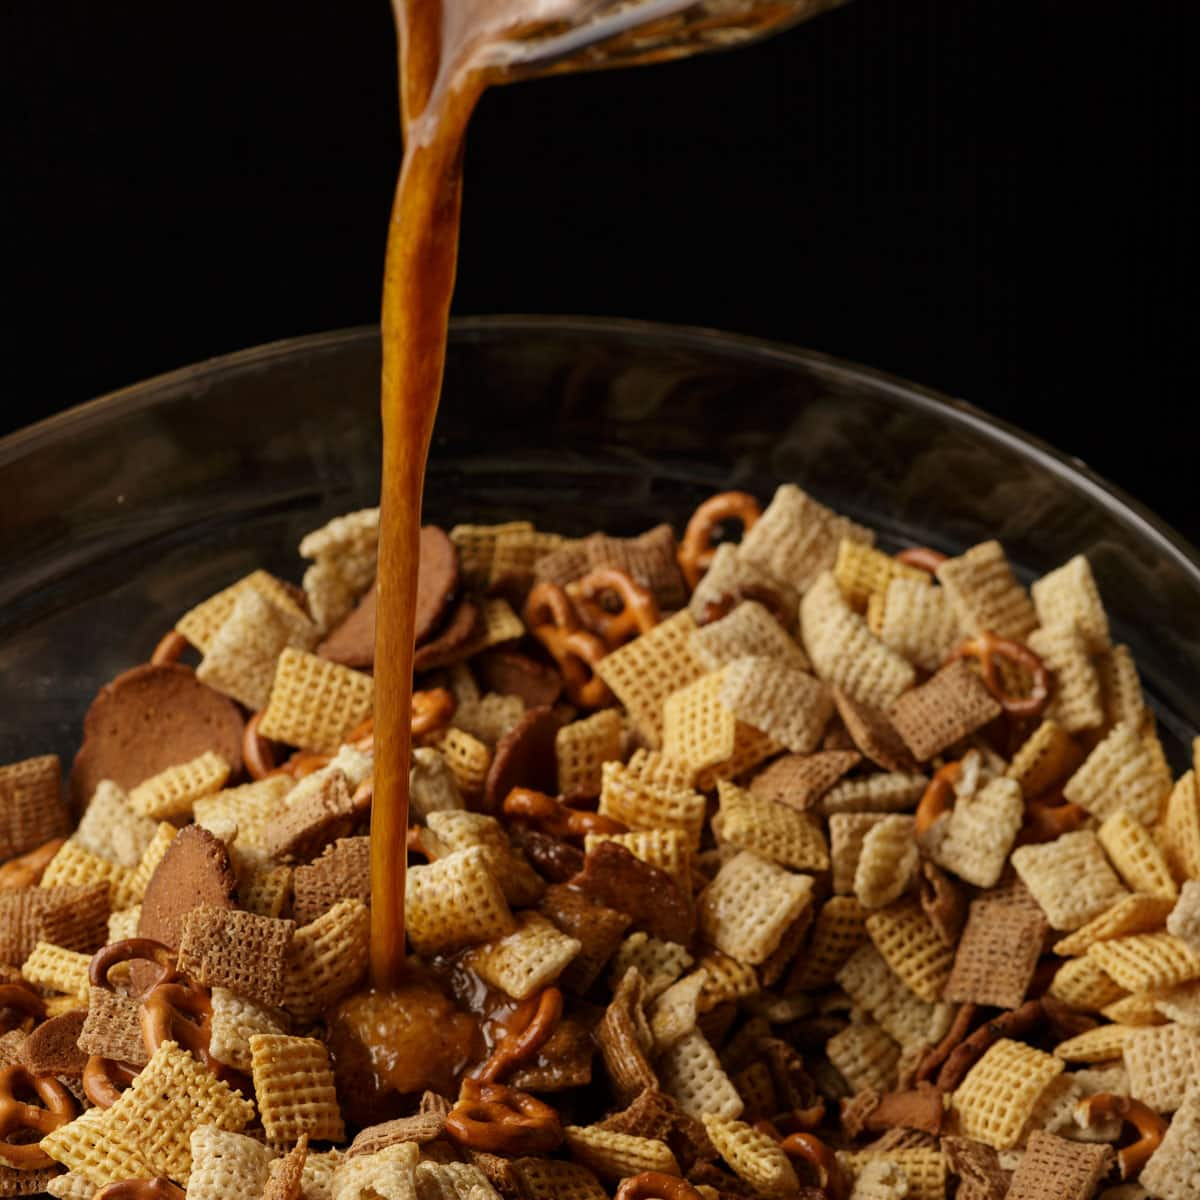 Seasoned butter being poured over a bowl of Chex mix